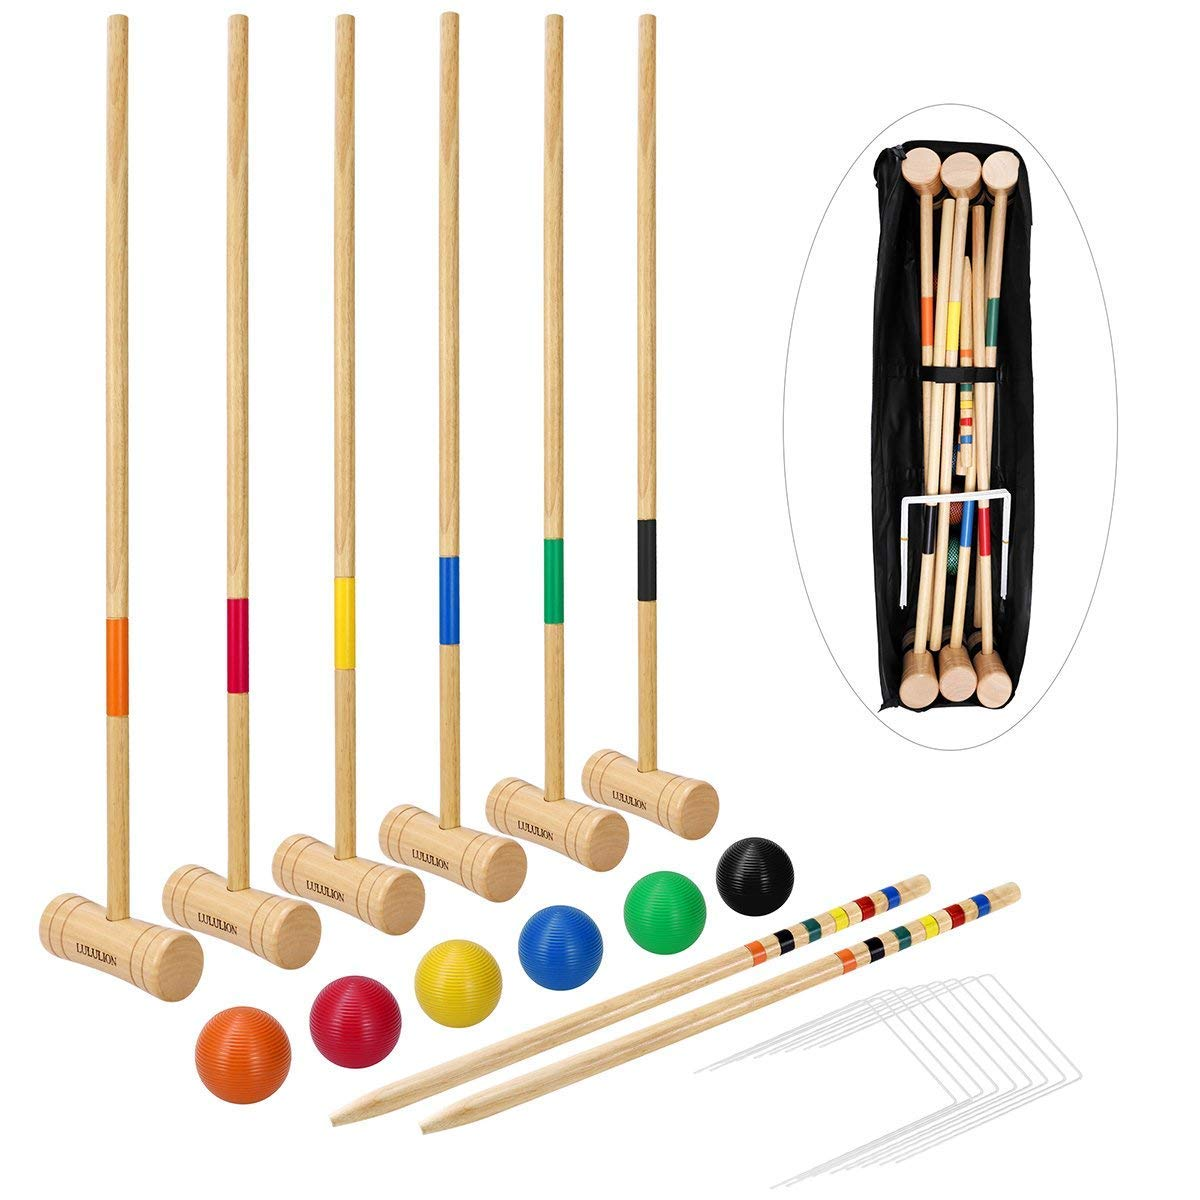 LULULION Croquet Set for Kids and Adults - Includes Extra Large Carrying Bag - 6 Players, Durable Hardwood Material, Deluxe Croquet Game Set for Family, 31-Inch by LULULION (Image #1)